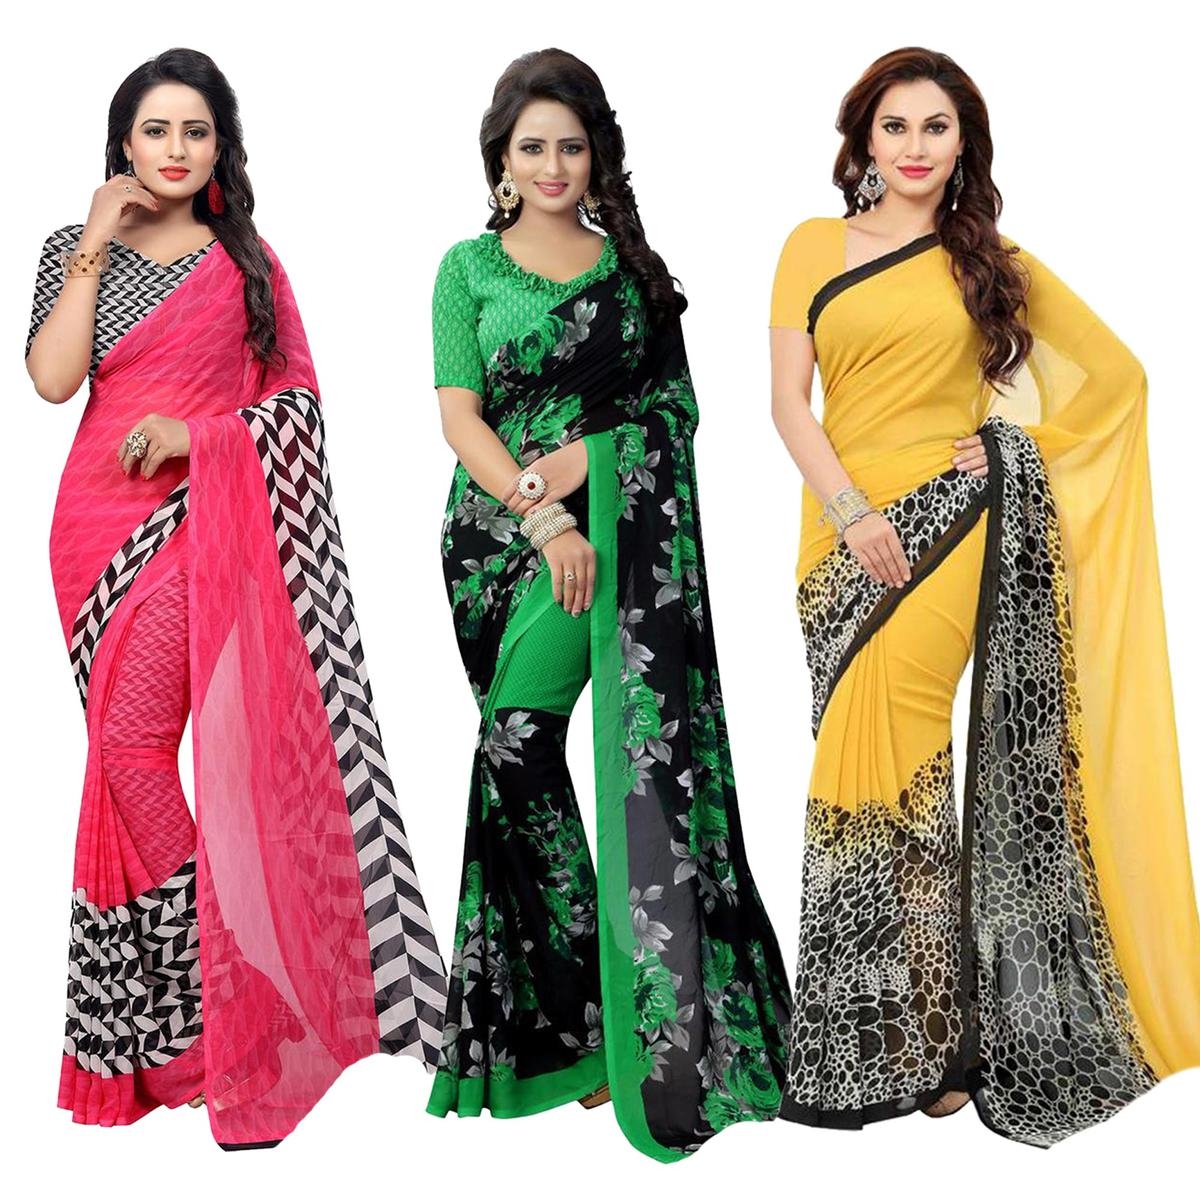 Opulent Casual Printed Georgette Saree - Pack of 3